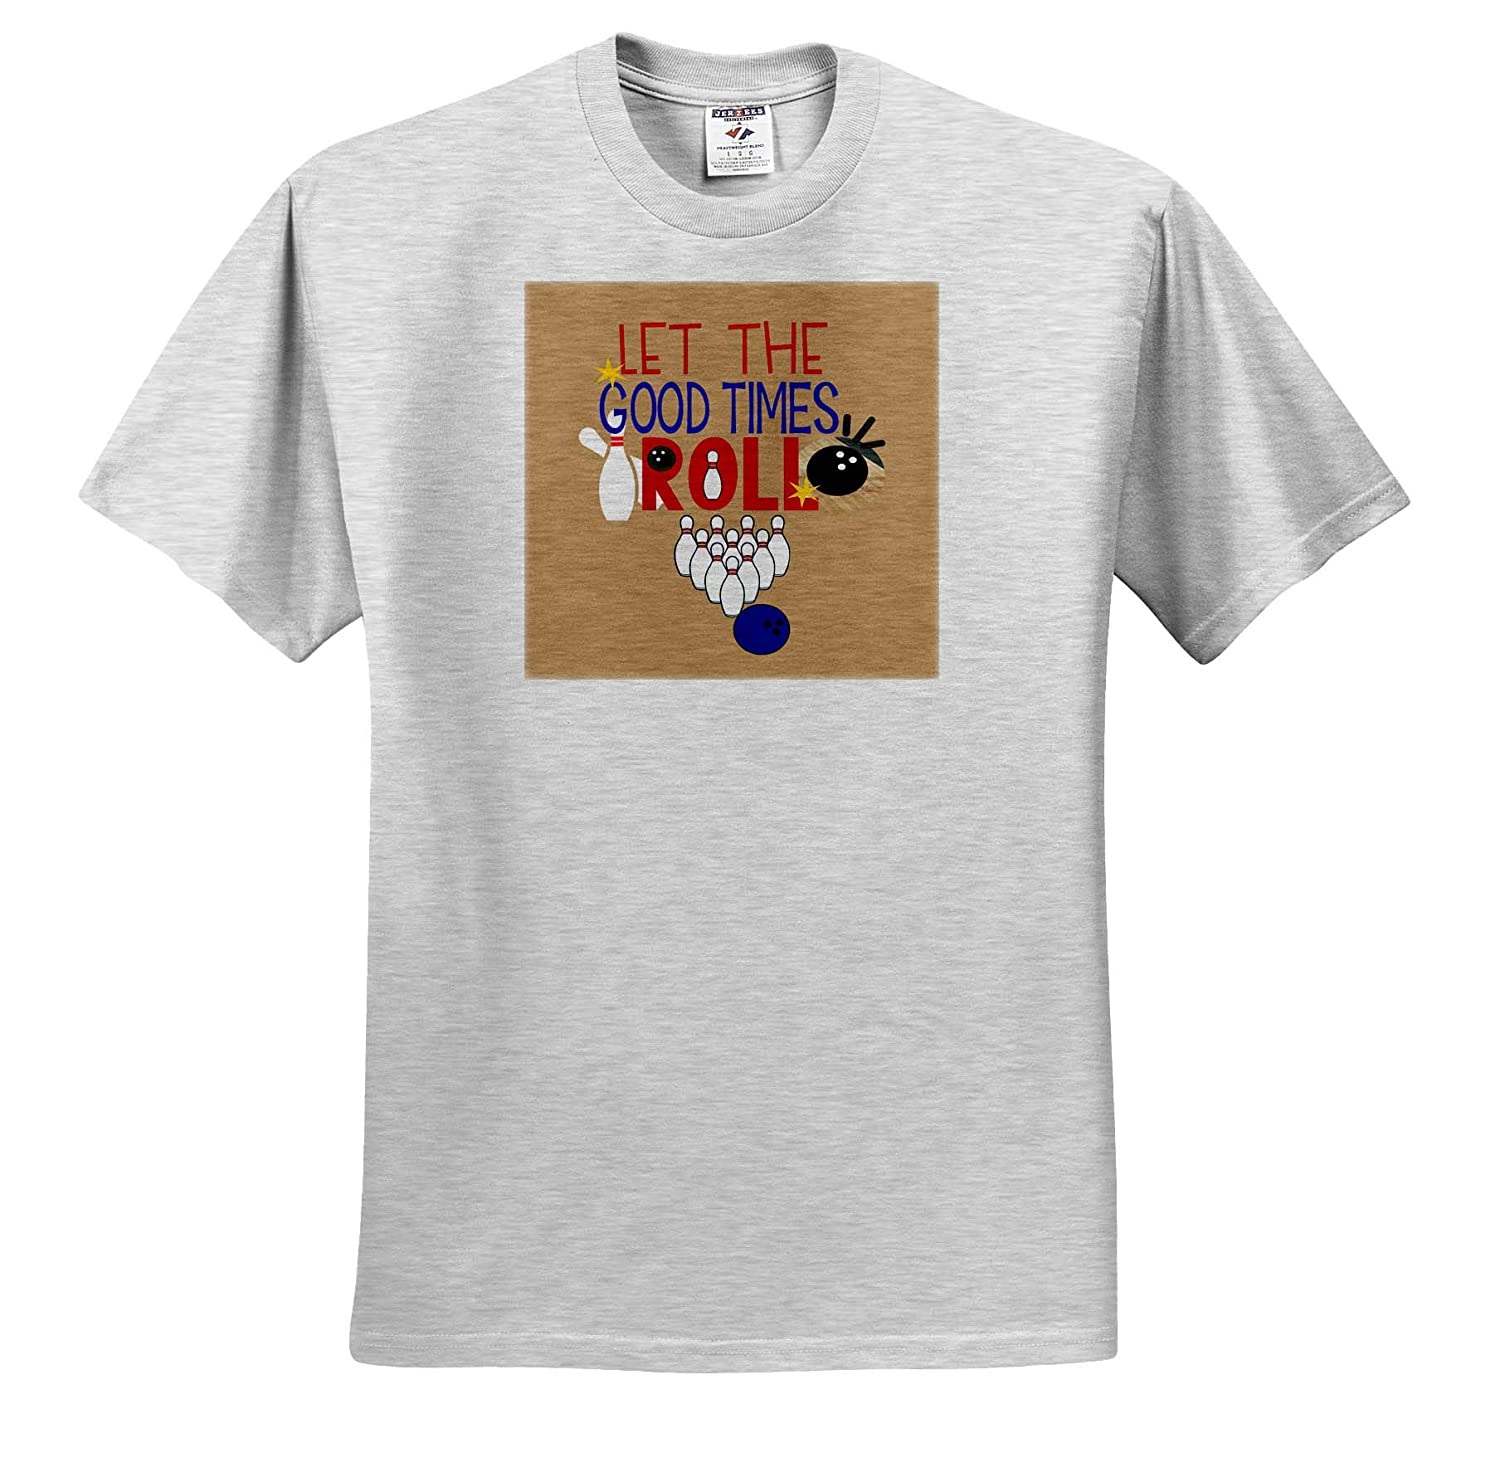 ts/_313488 Typography Adult T-Shirt XL Let The Good Times Roll with Bowling 3dRose Sandy Mertens Sports Designs